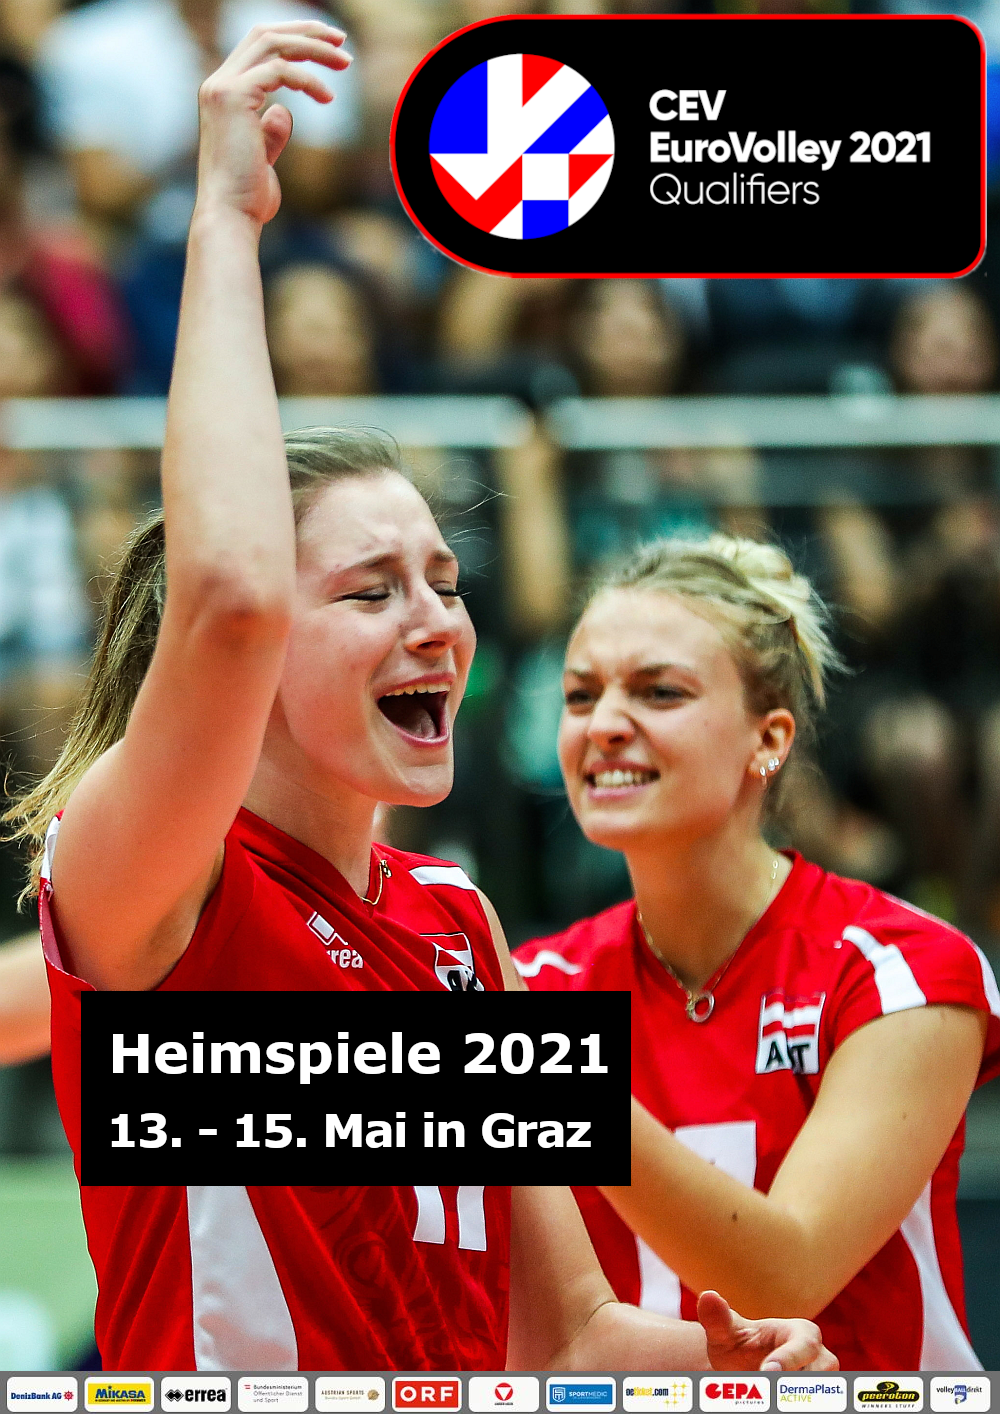 CEV EuroVolley 2021, Women Qualifiers